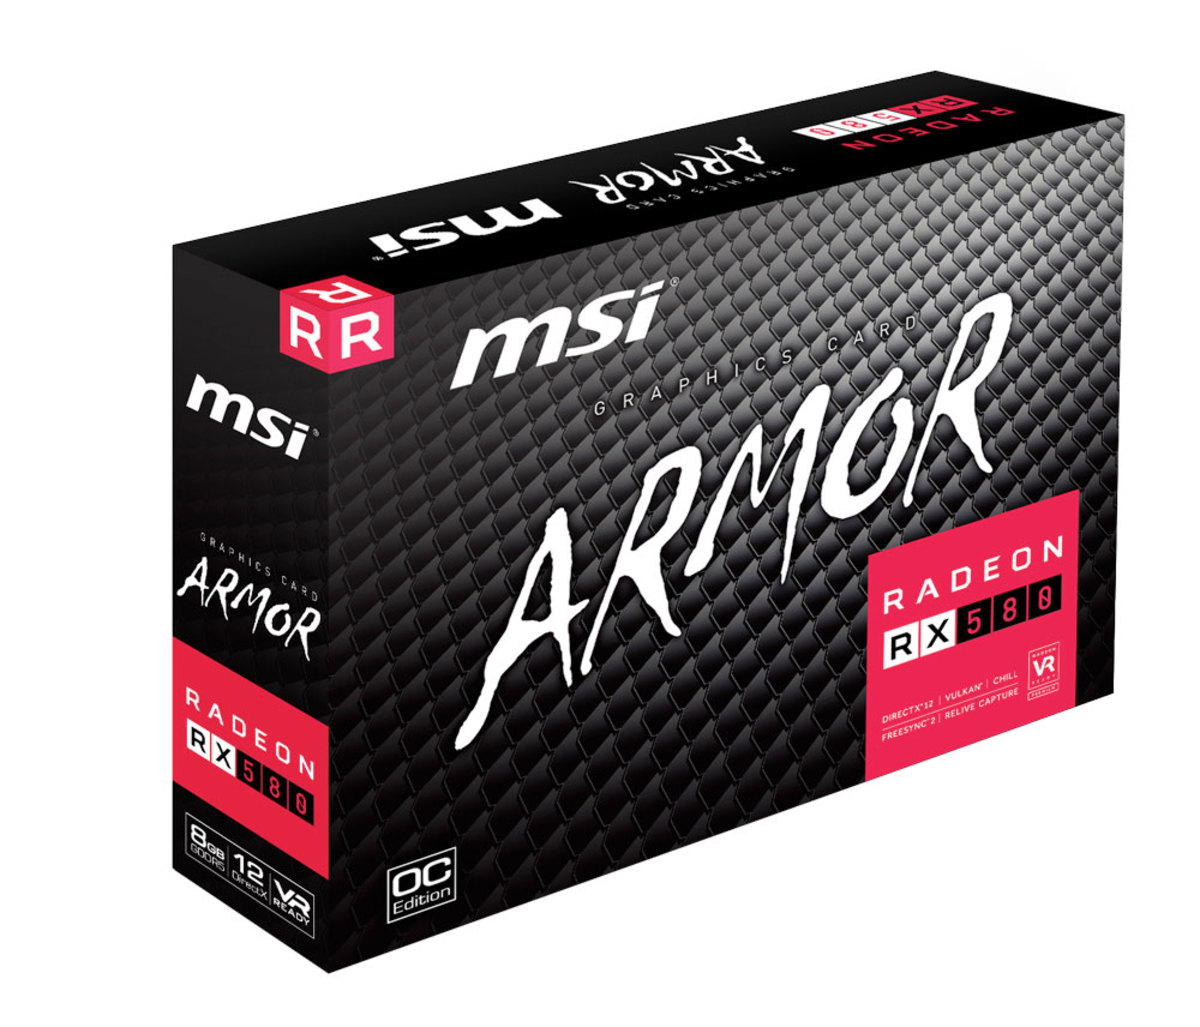 Msi Radeon Rx 580 Armor Single Graphics Card Cryptocurrency Mining Rig Turbofuture Technology With our crypto profitability calculator you'll easily calculate profit with cards you own. msi radeon rx 580 armor single graphics